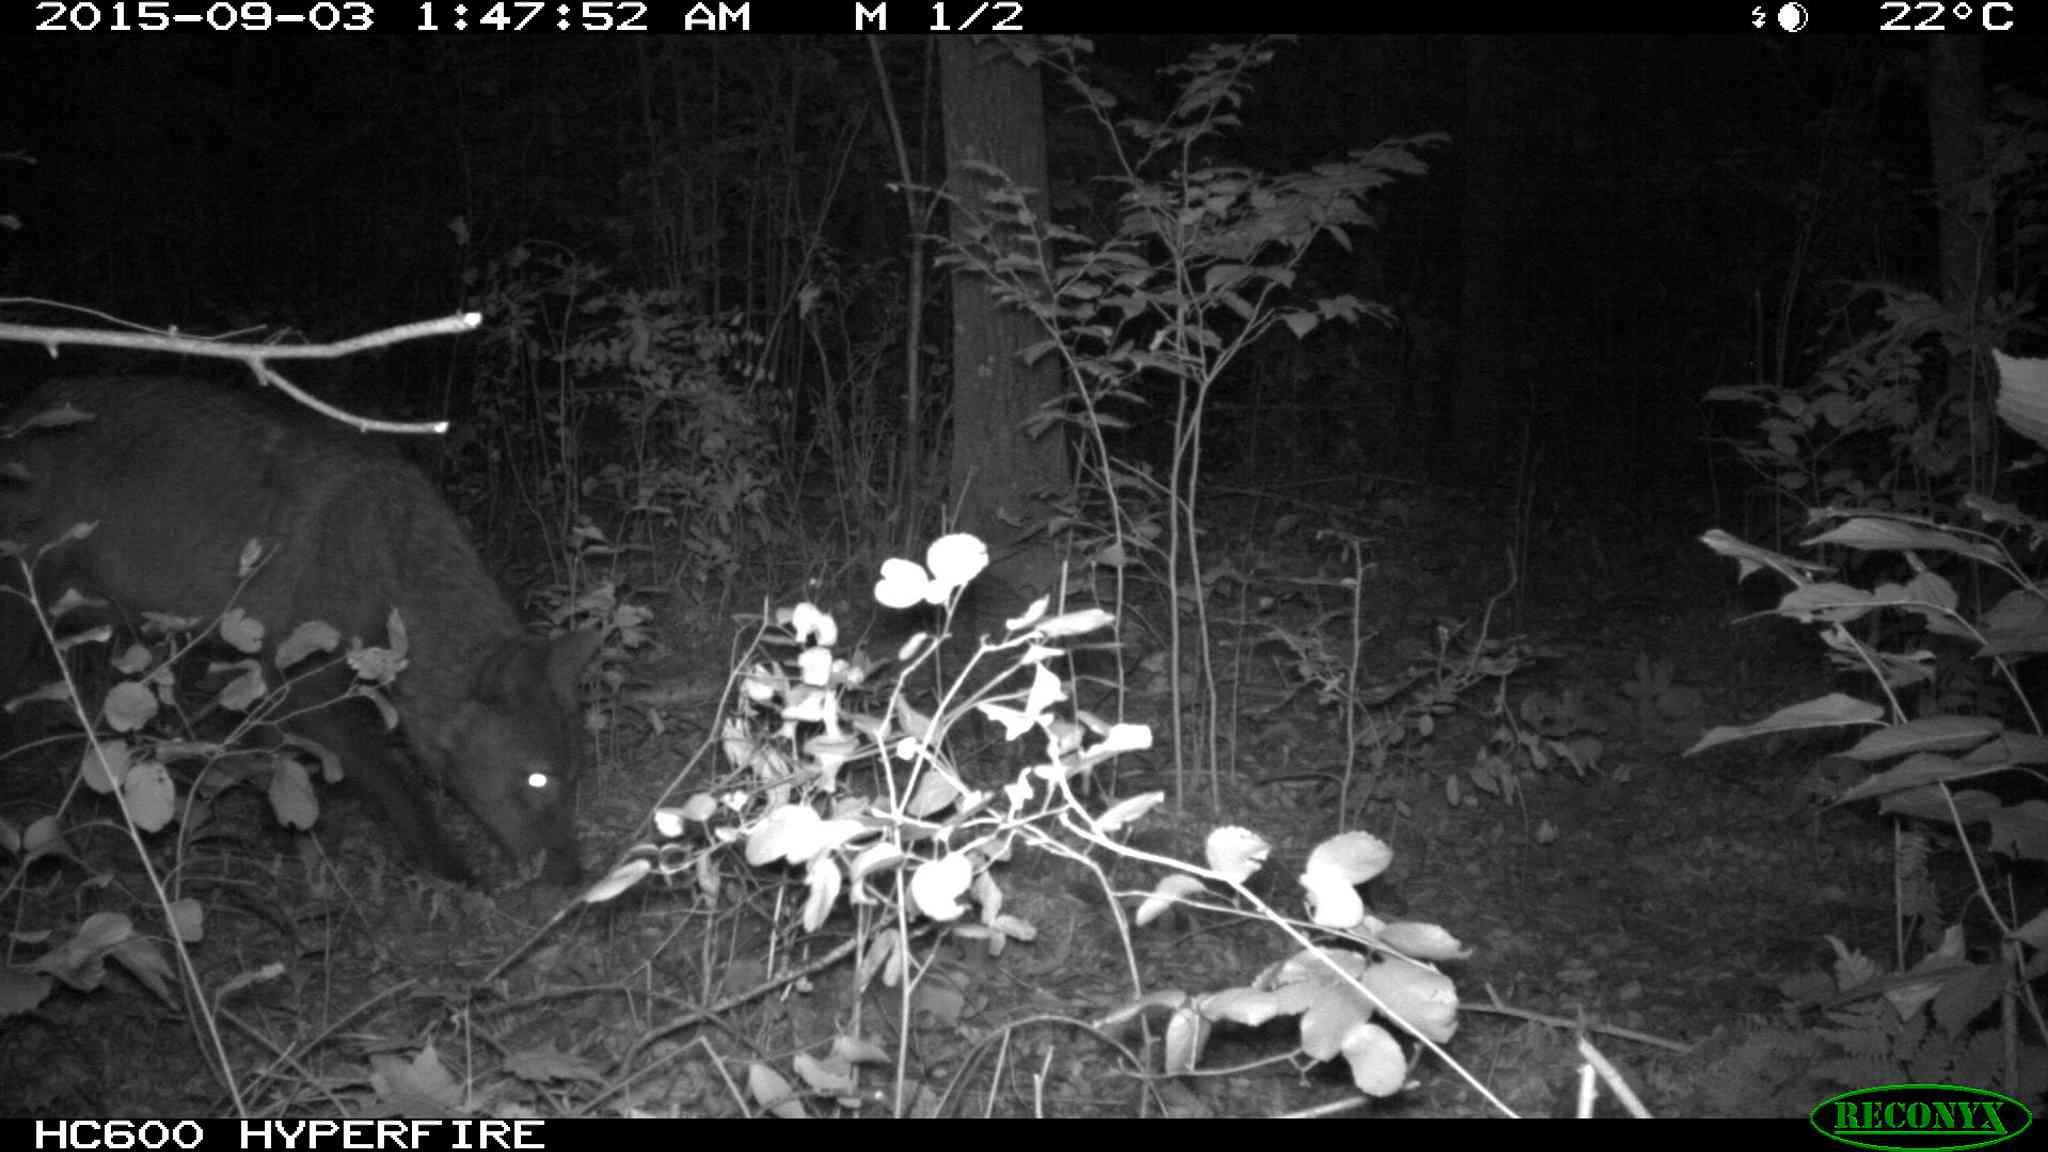 These images of a single wolf near Hillside Beach were recently taken by a trail camera put up by the province. A trail camera, attached to a tree, takes photos automatically when it senses movement.